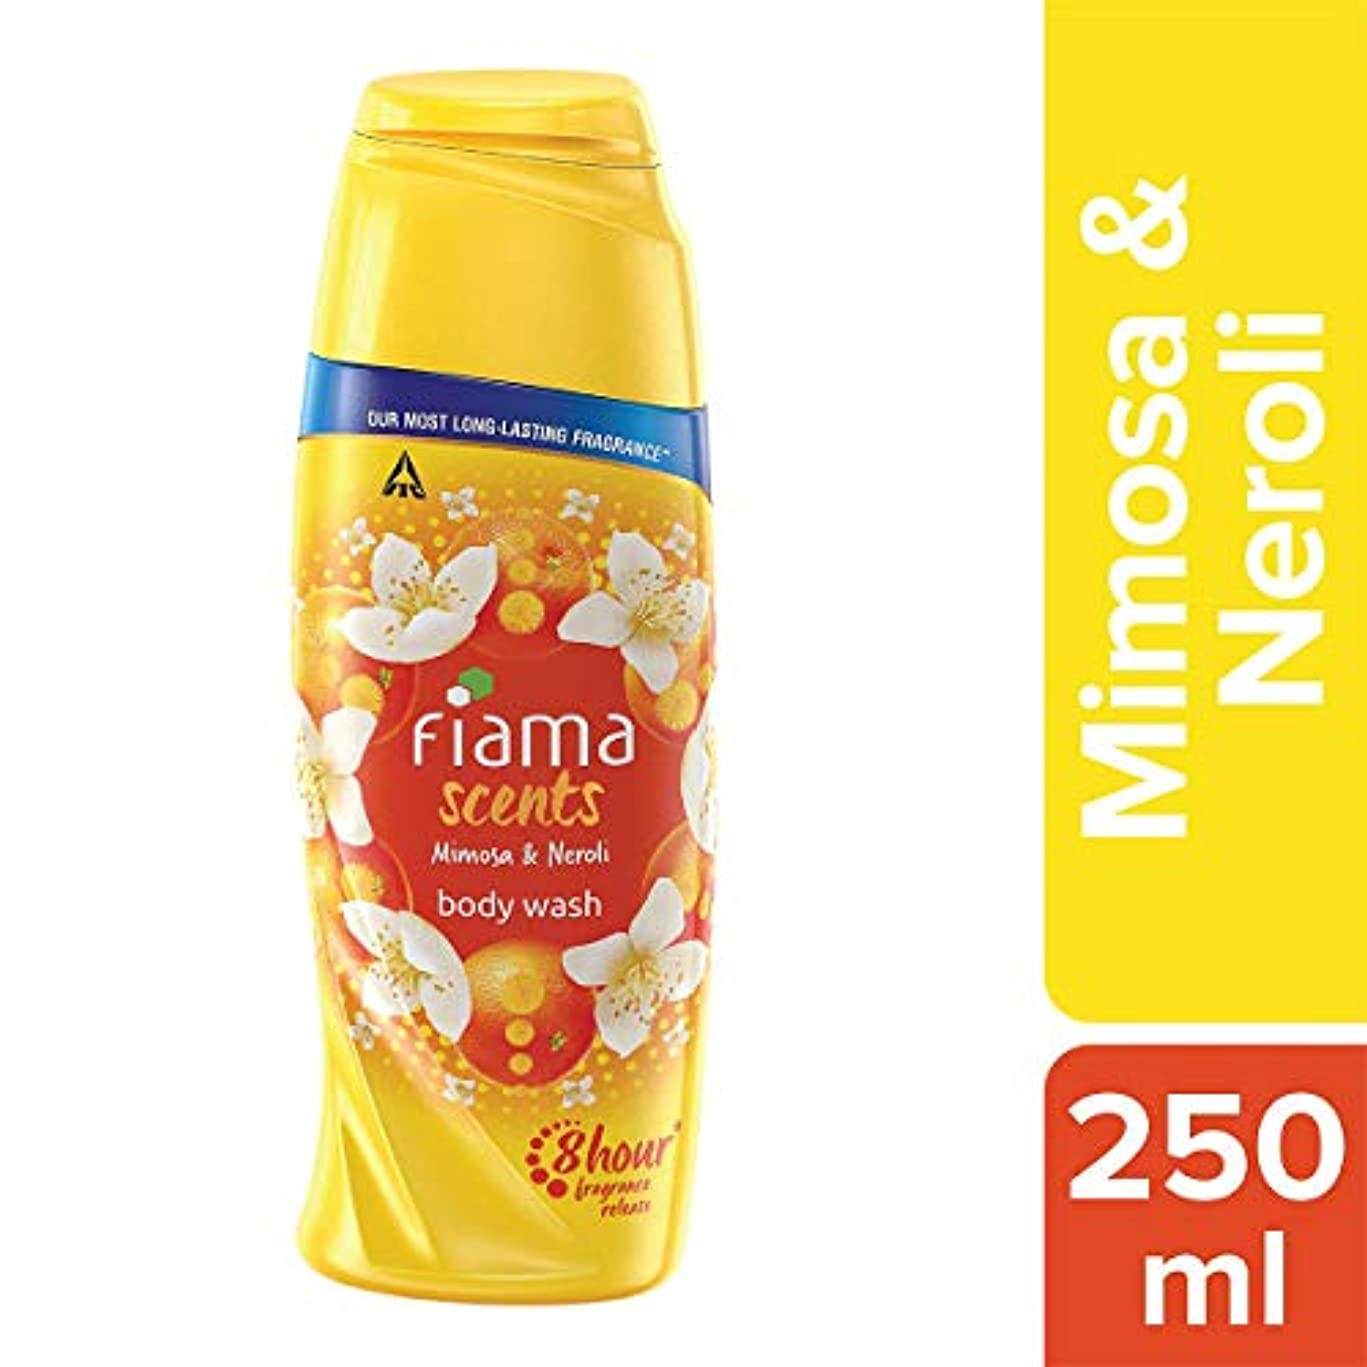 Fiama Scents Mimosa and Neroli Body Wash, 250 ml